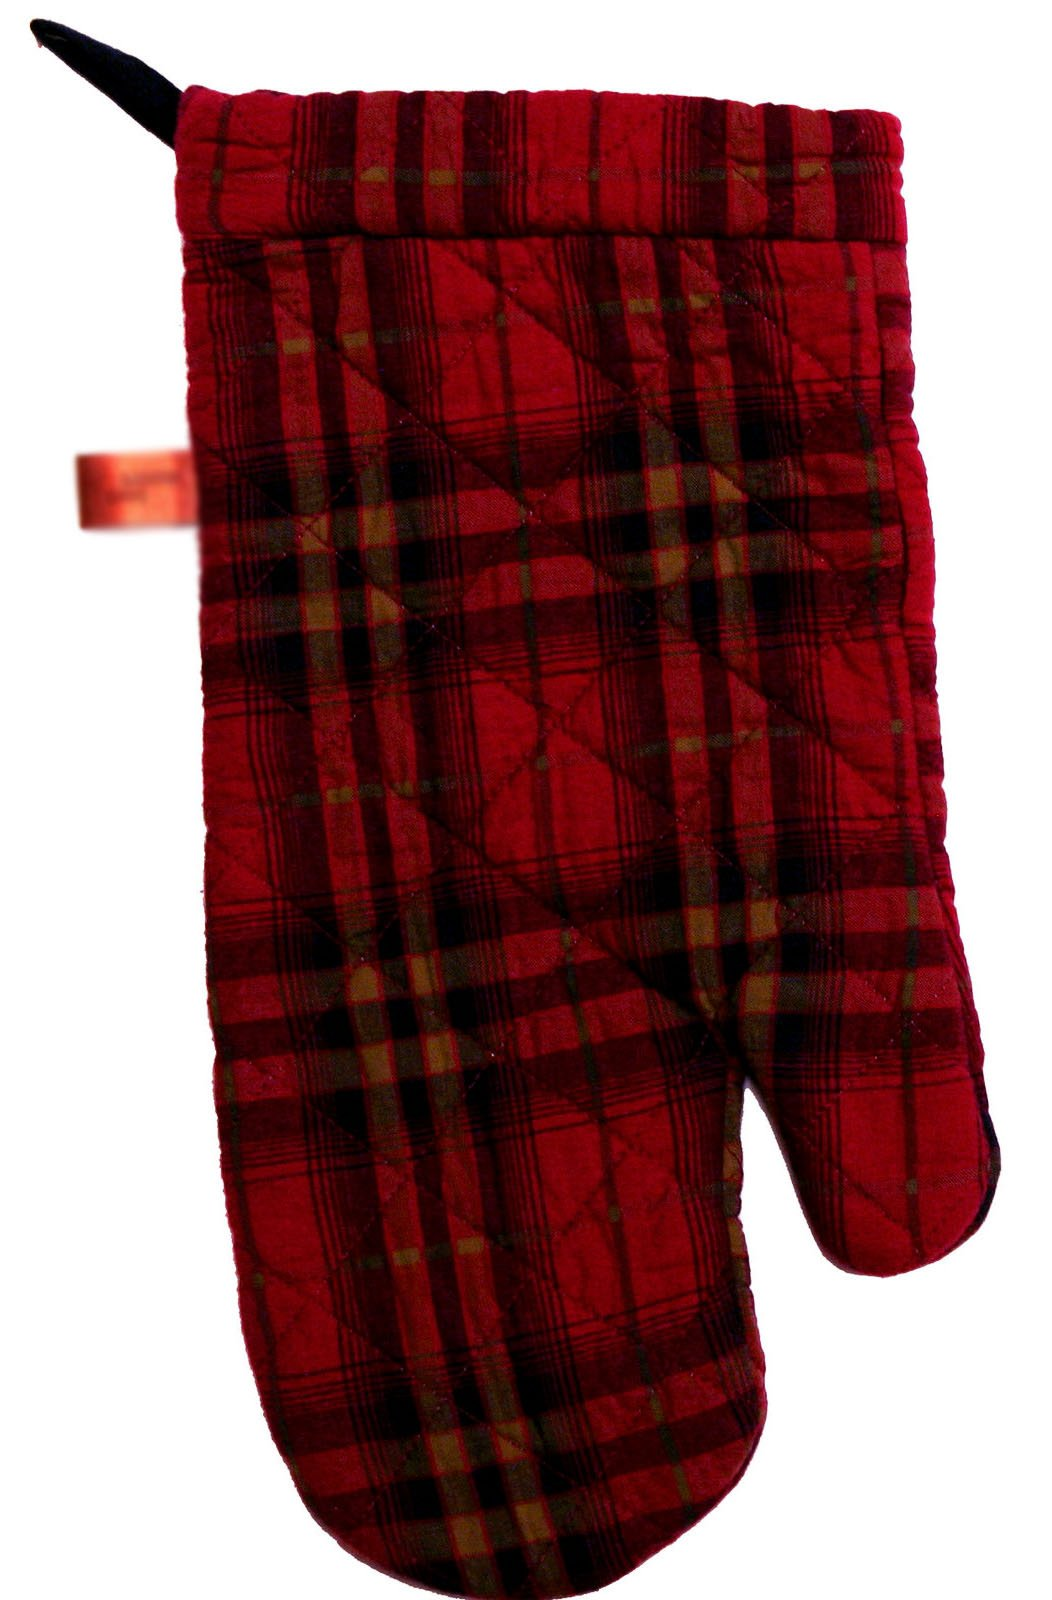 "Custom & Durable {14"" x 6.5"" Inch Each} 4 Set Pack of Mid Size ""Non-Slip"" Pot Holders Gloves Made of Cotton for Carrying Hot Dishes w/ Quilted Crimson Plaid Style {Red, Black, Tan, & Grey} by mySimple Products"